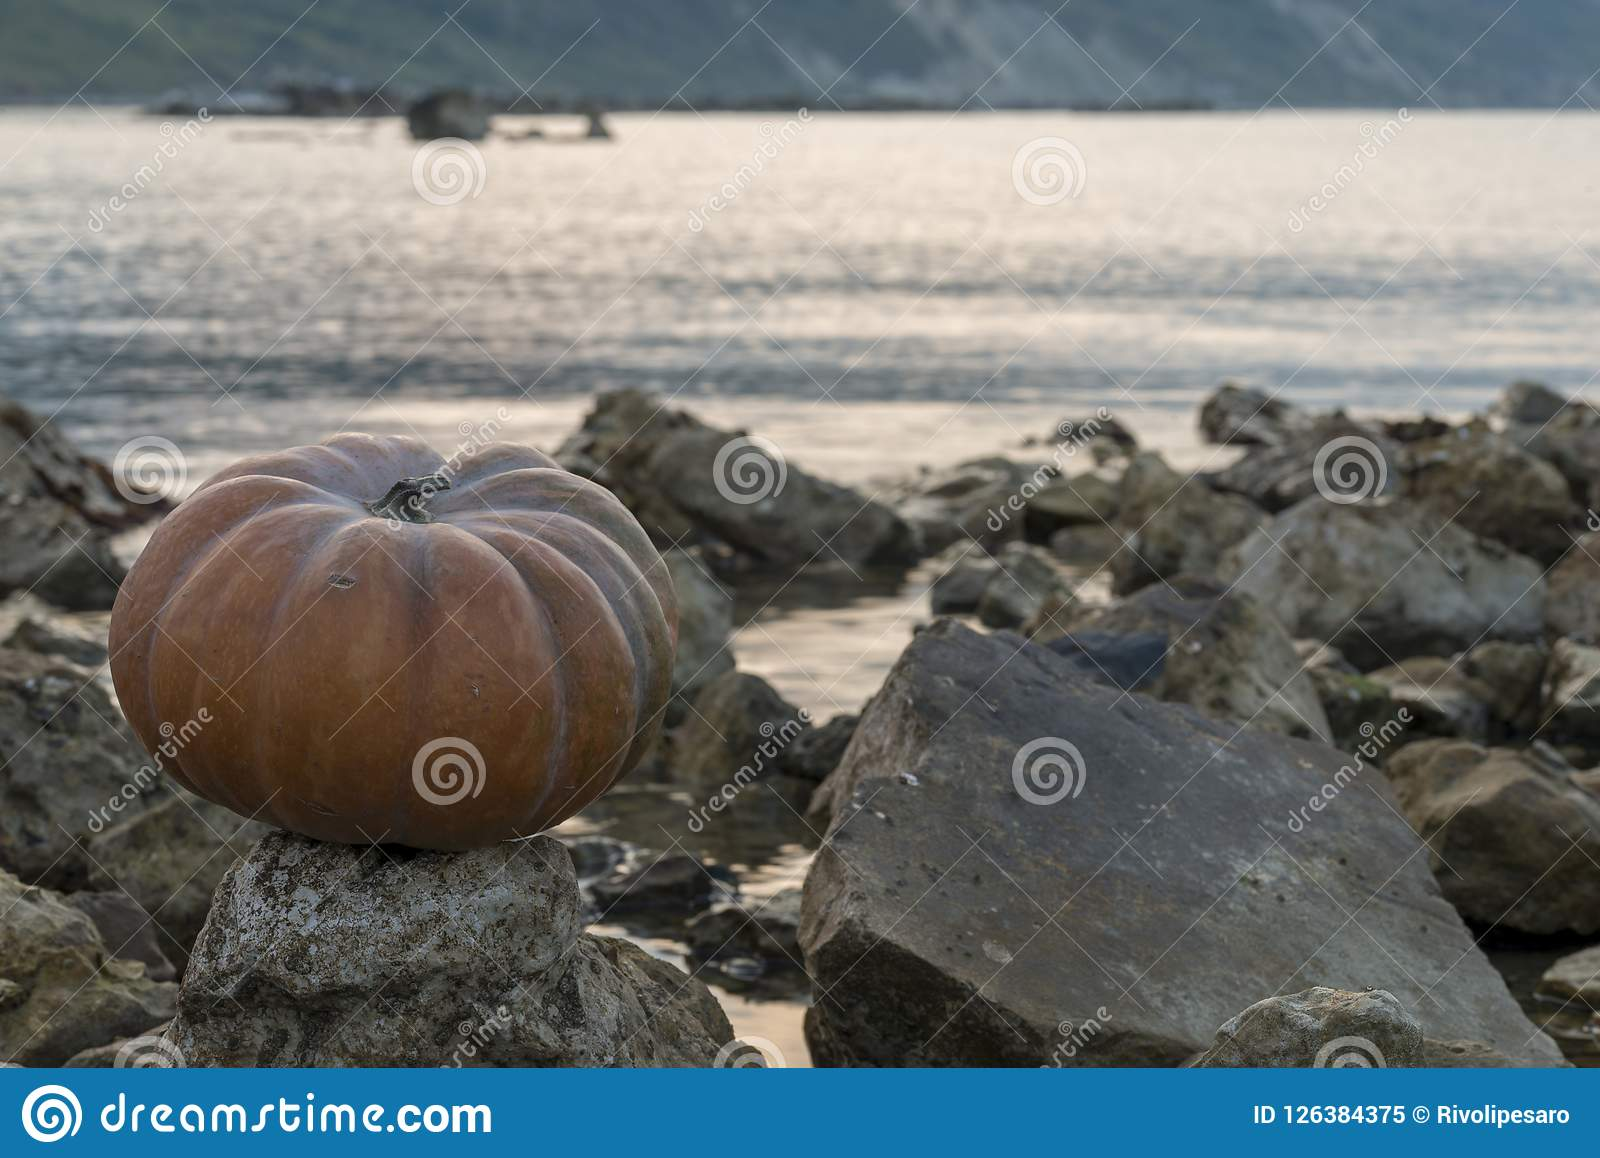 pumpkin on the rock at sunset stock image - image of blue, rock